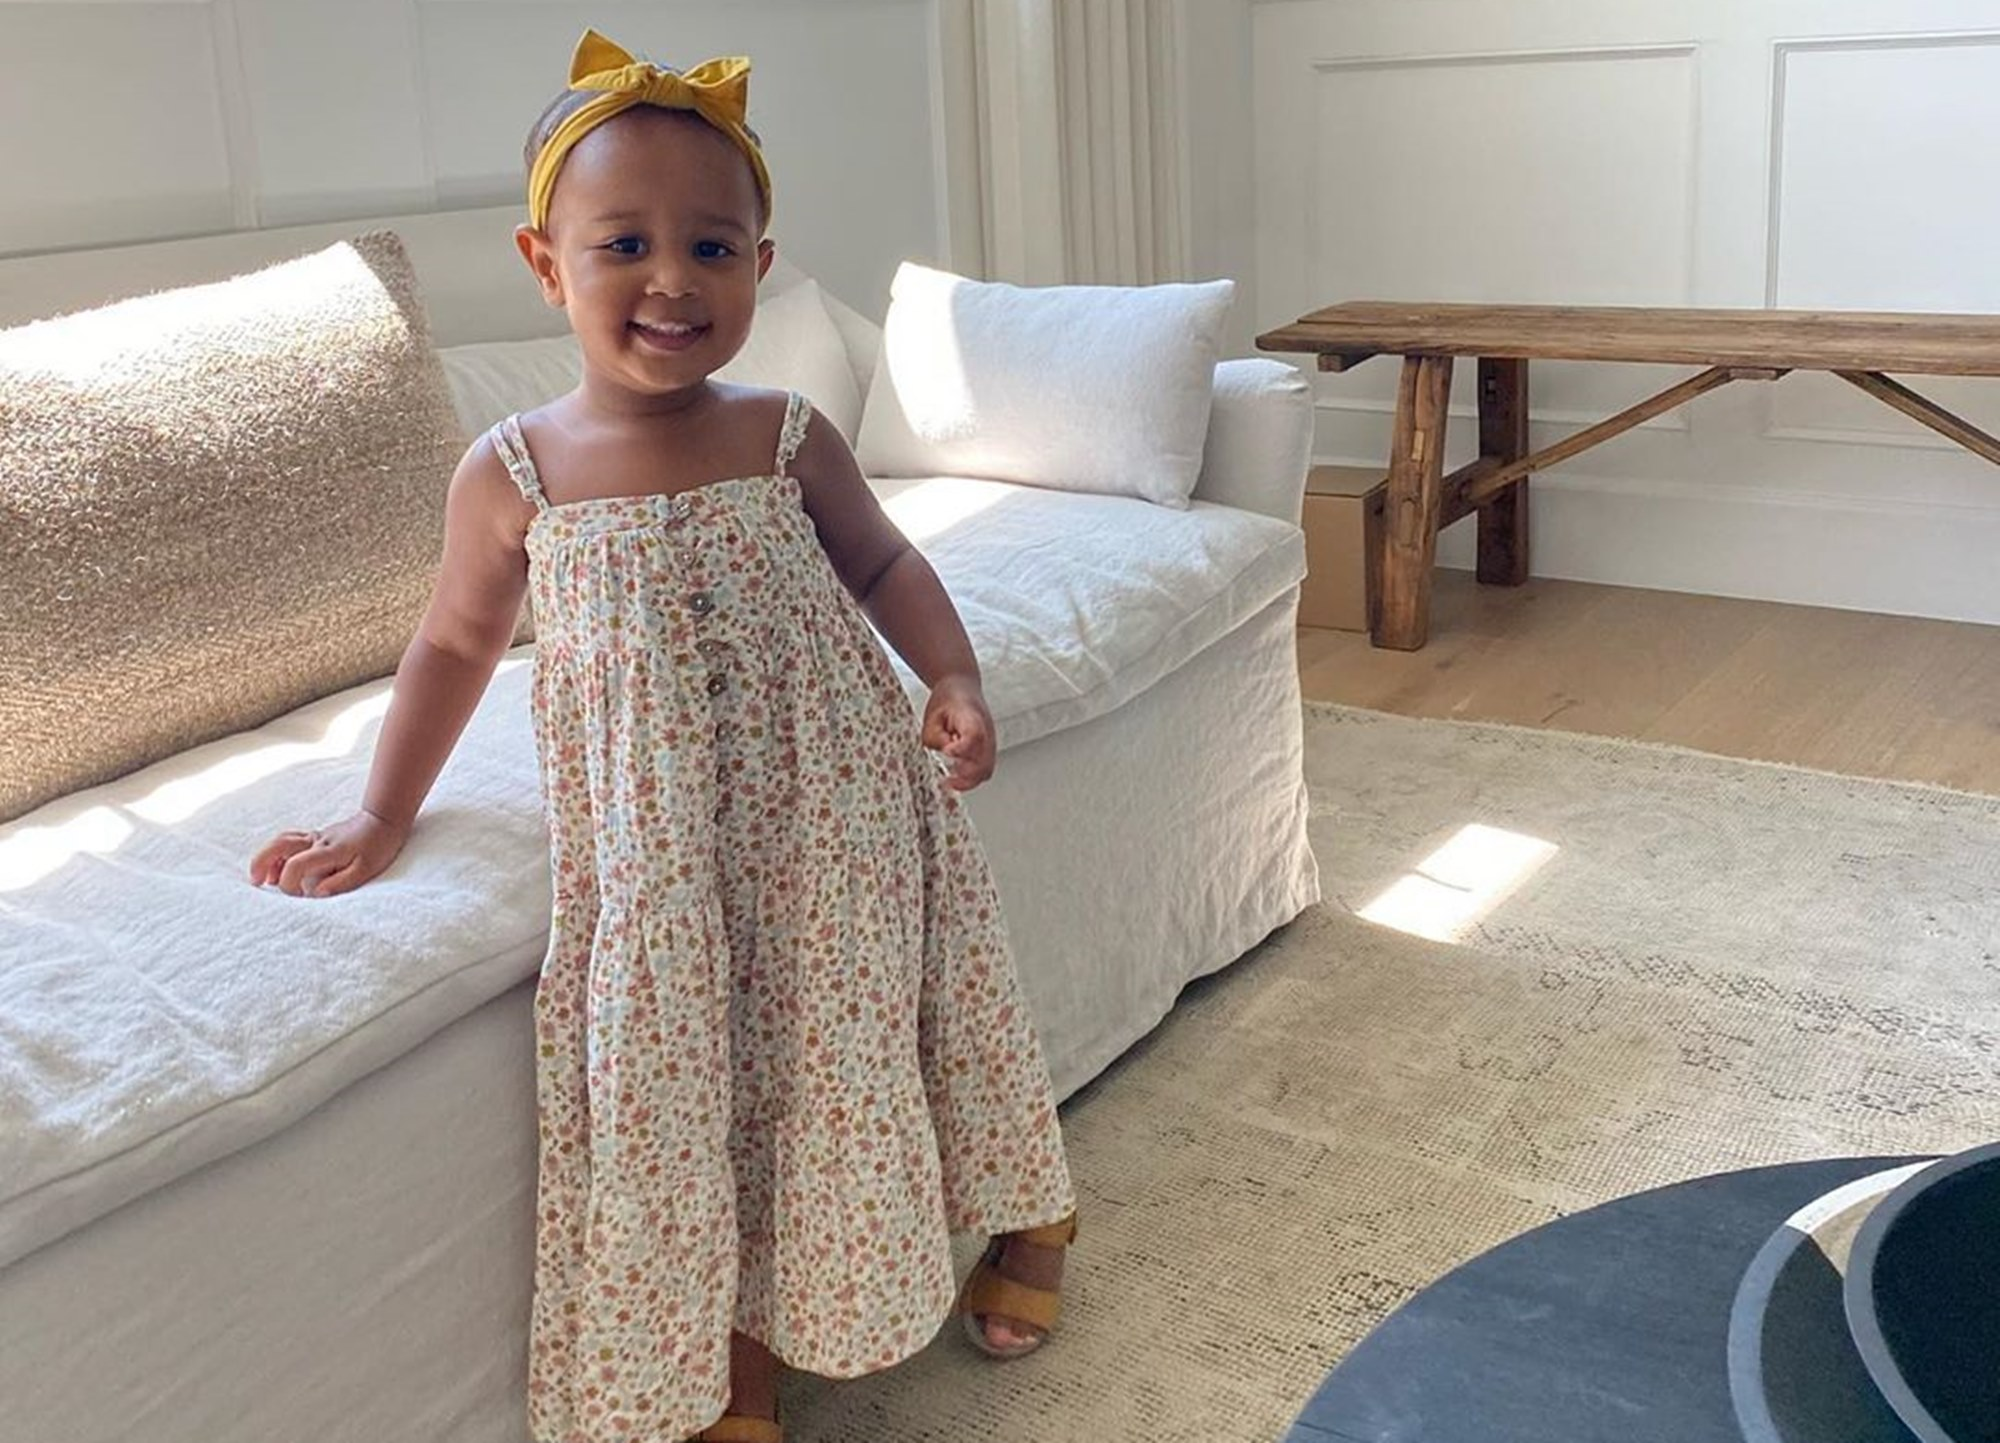 tia-mowrys-daughter-cairo-is-an-overload-of-cuteness-in-new-photos-wearing-a-pretty-bathing-suit